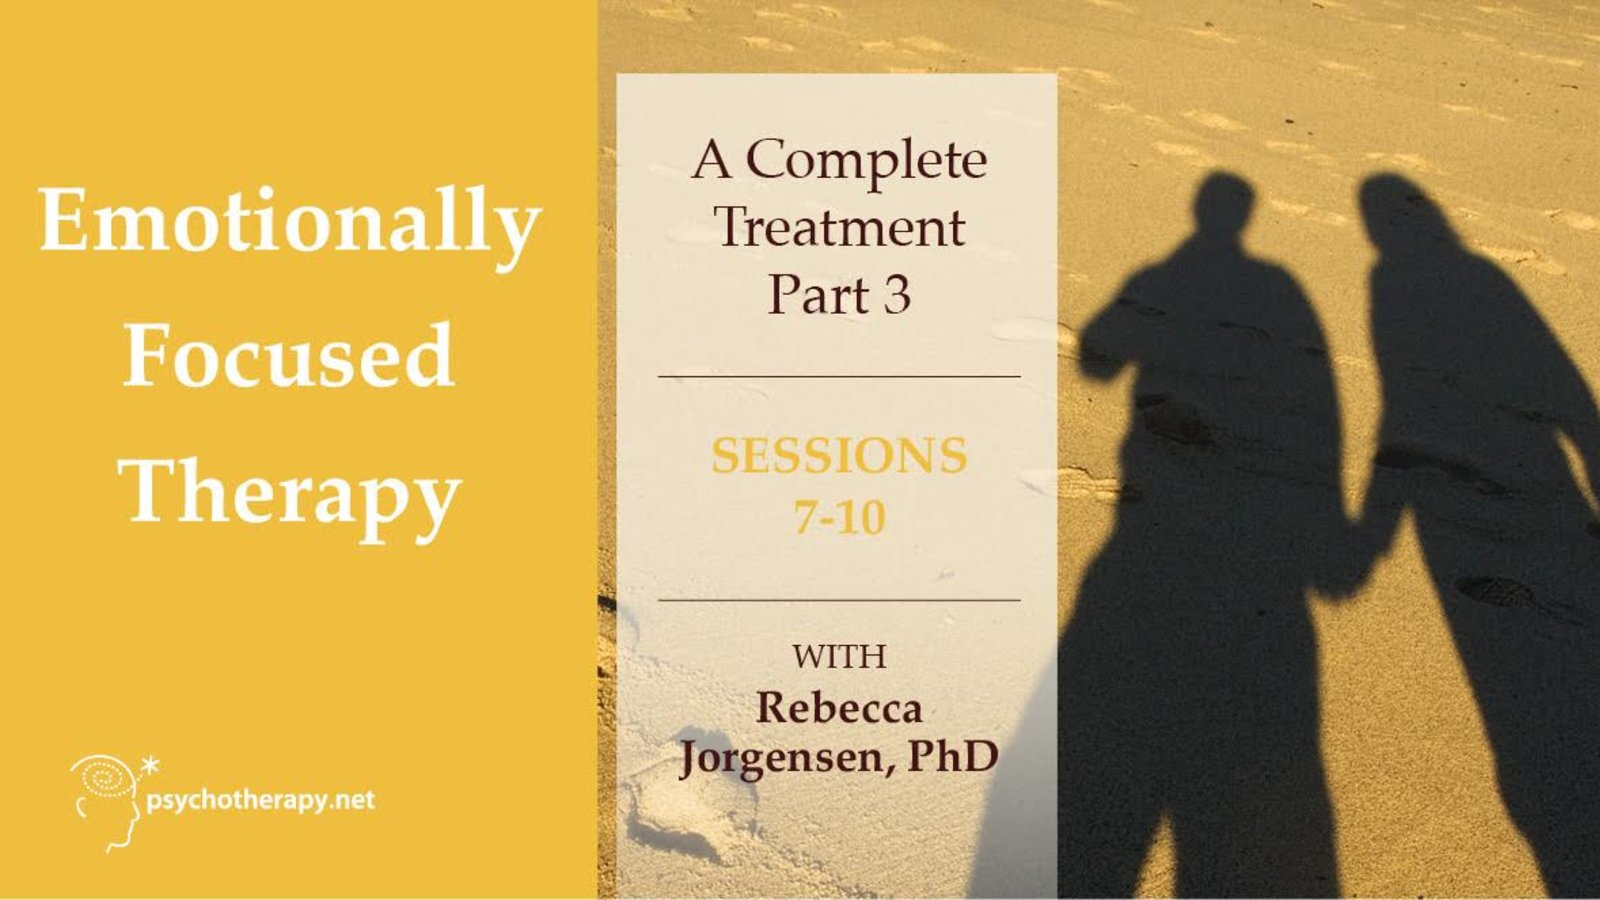 Emotionally Focused Therapy - Part 3 - With Rebecca Jorgensen